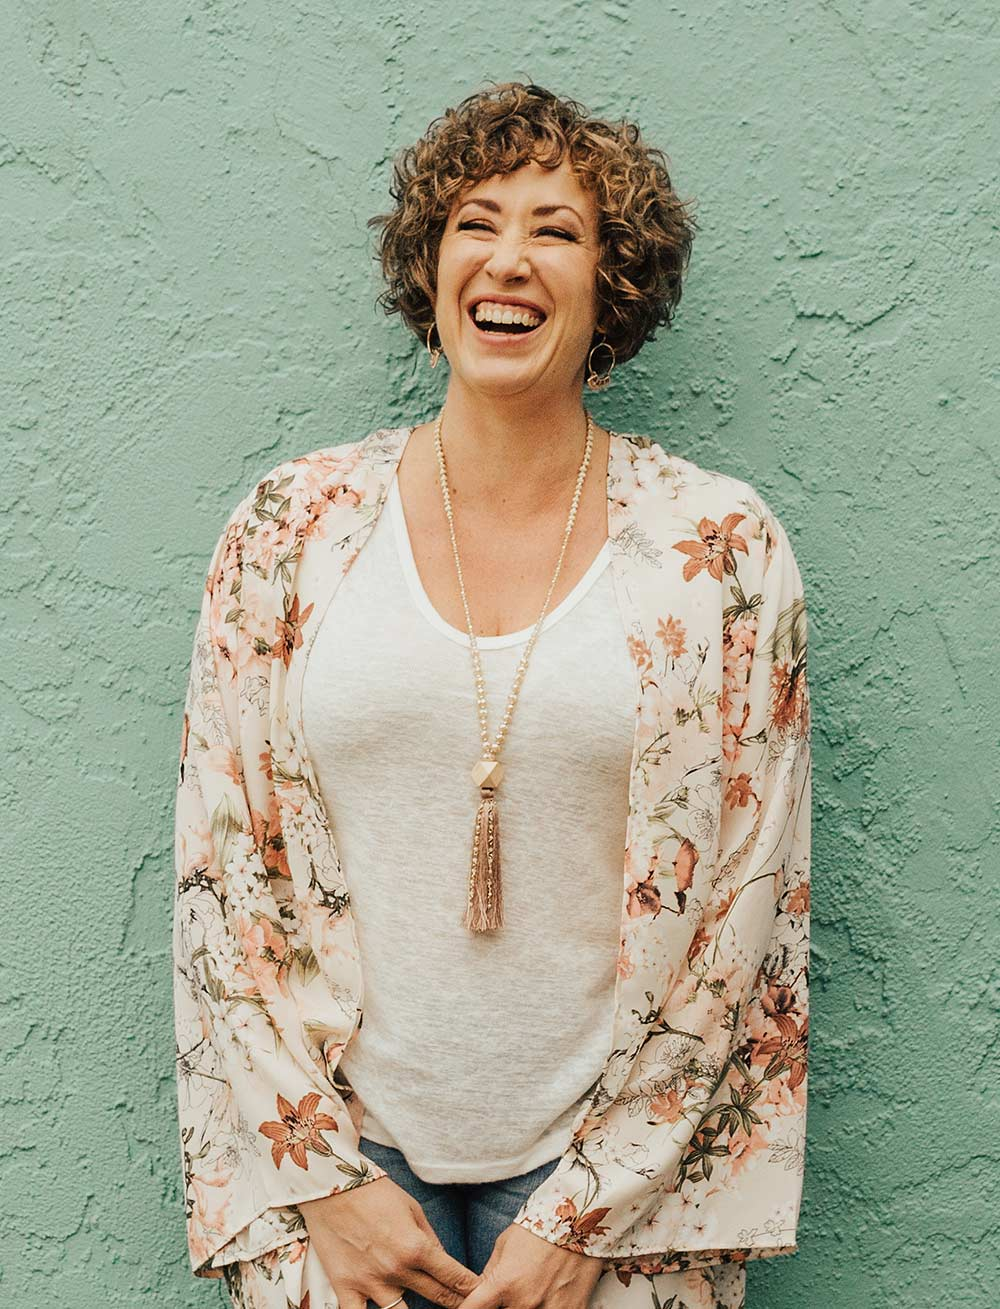 Lisa Kuzman Coaching | Self-Care & Wellness Coach, Therapist, and Mentor